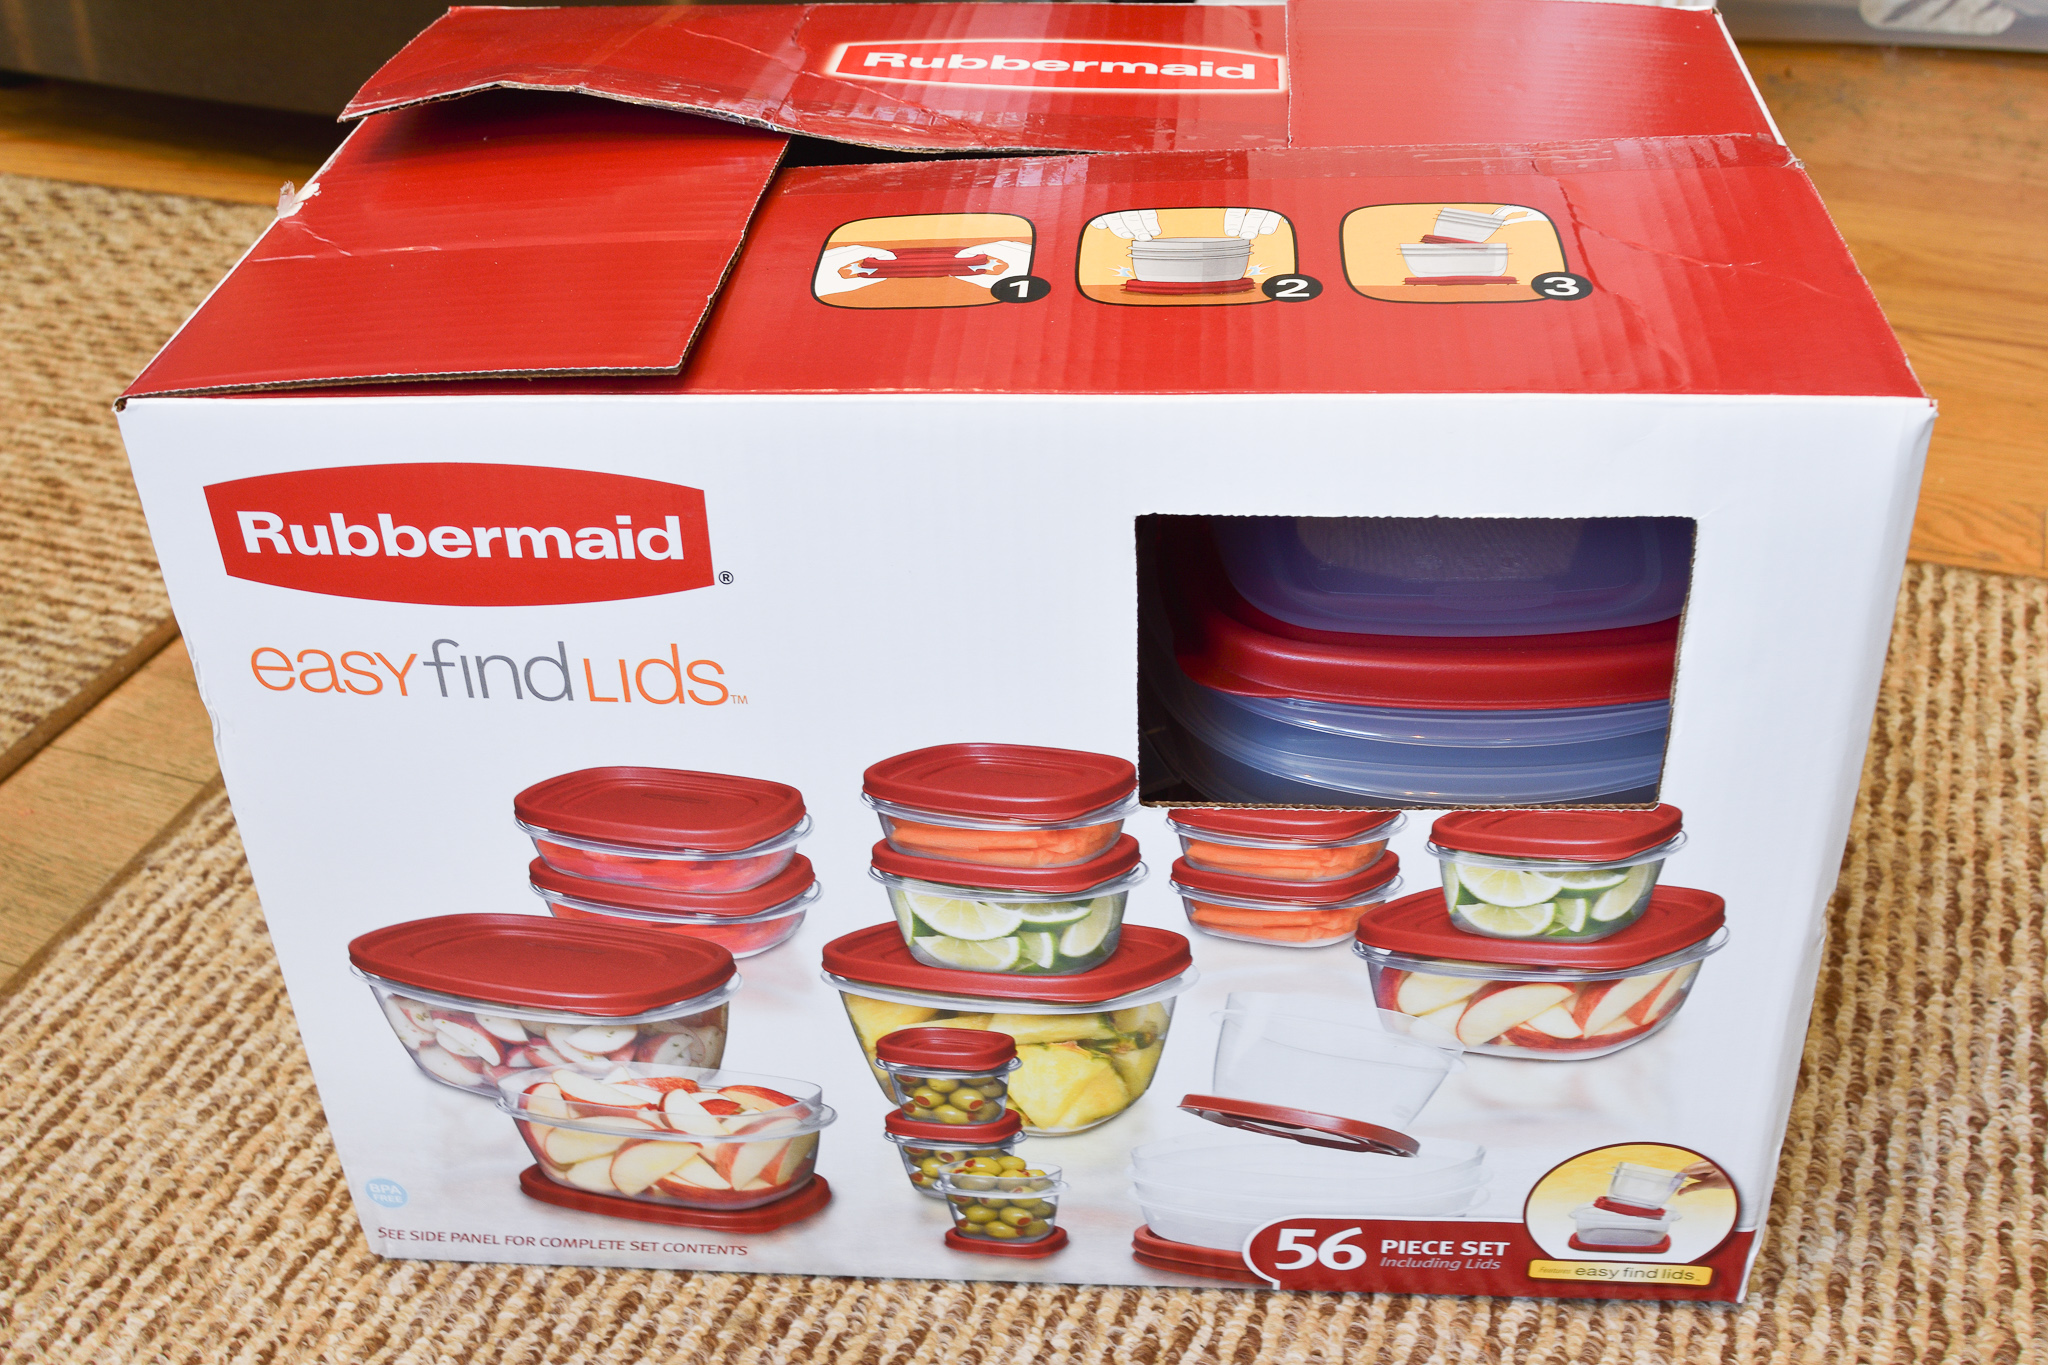 box of new Rubbermaid food storage containers